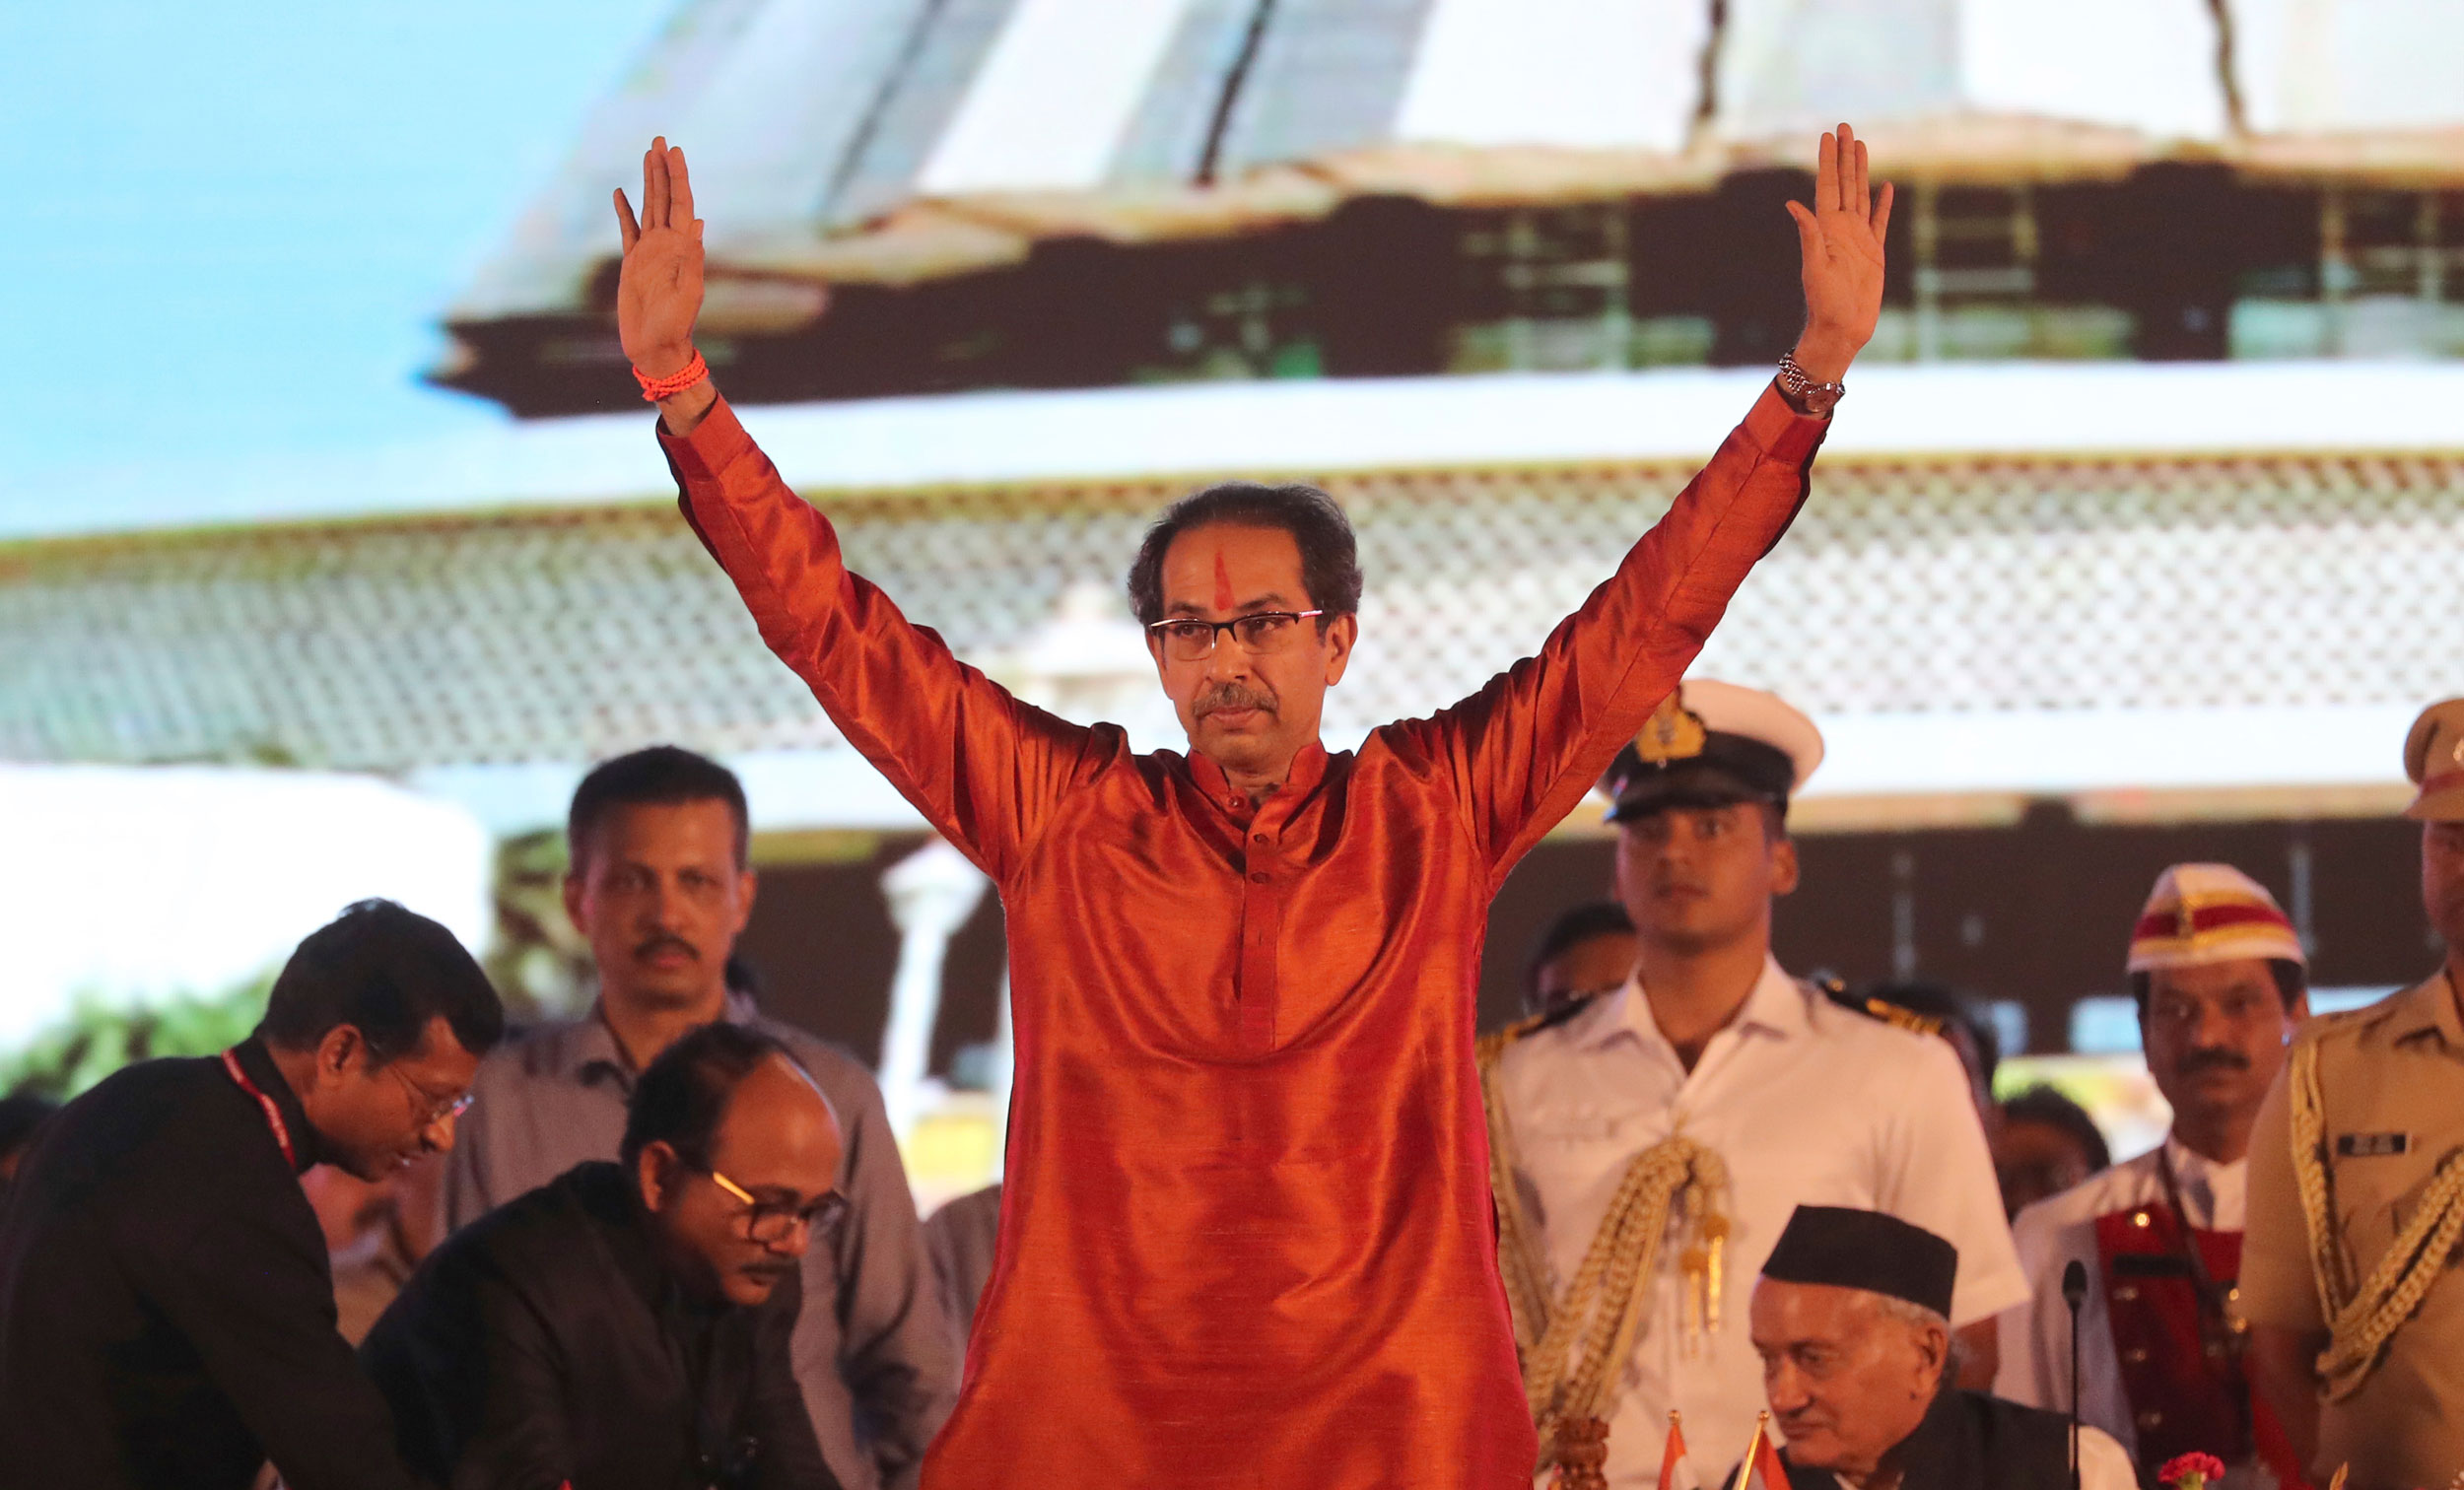 Shiv Sena chief Uddhav Thackeray greets the crowd after after taking oath as the chief minister of Maharashtra during the swearing-in-ceremony in Mumbai on Thursday.